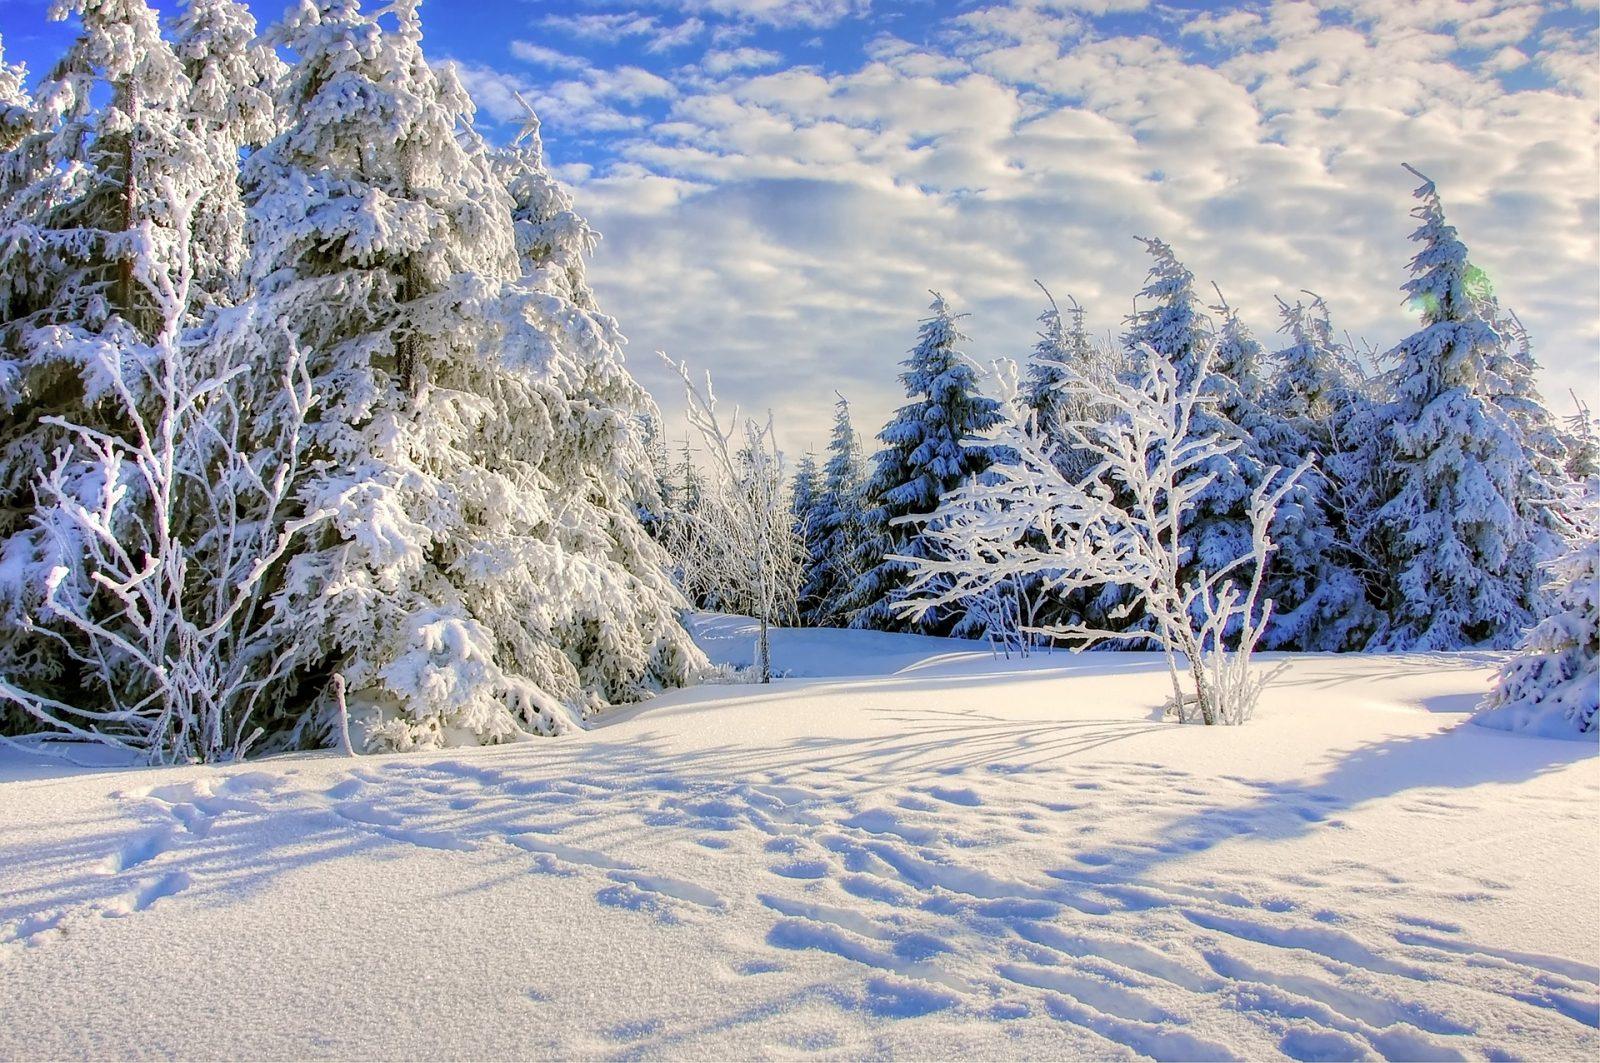 A country scene filled with snow.